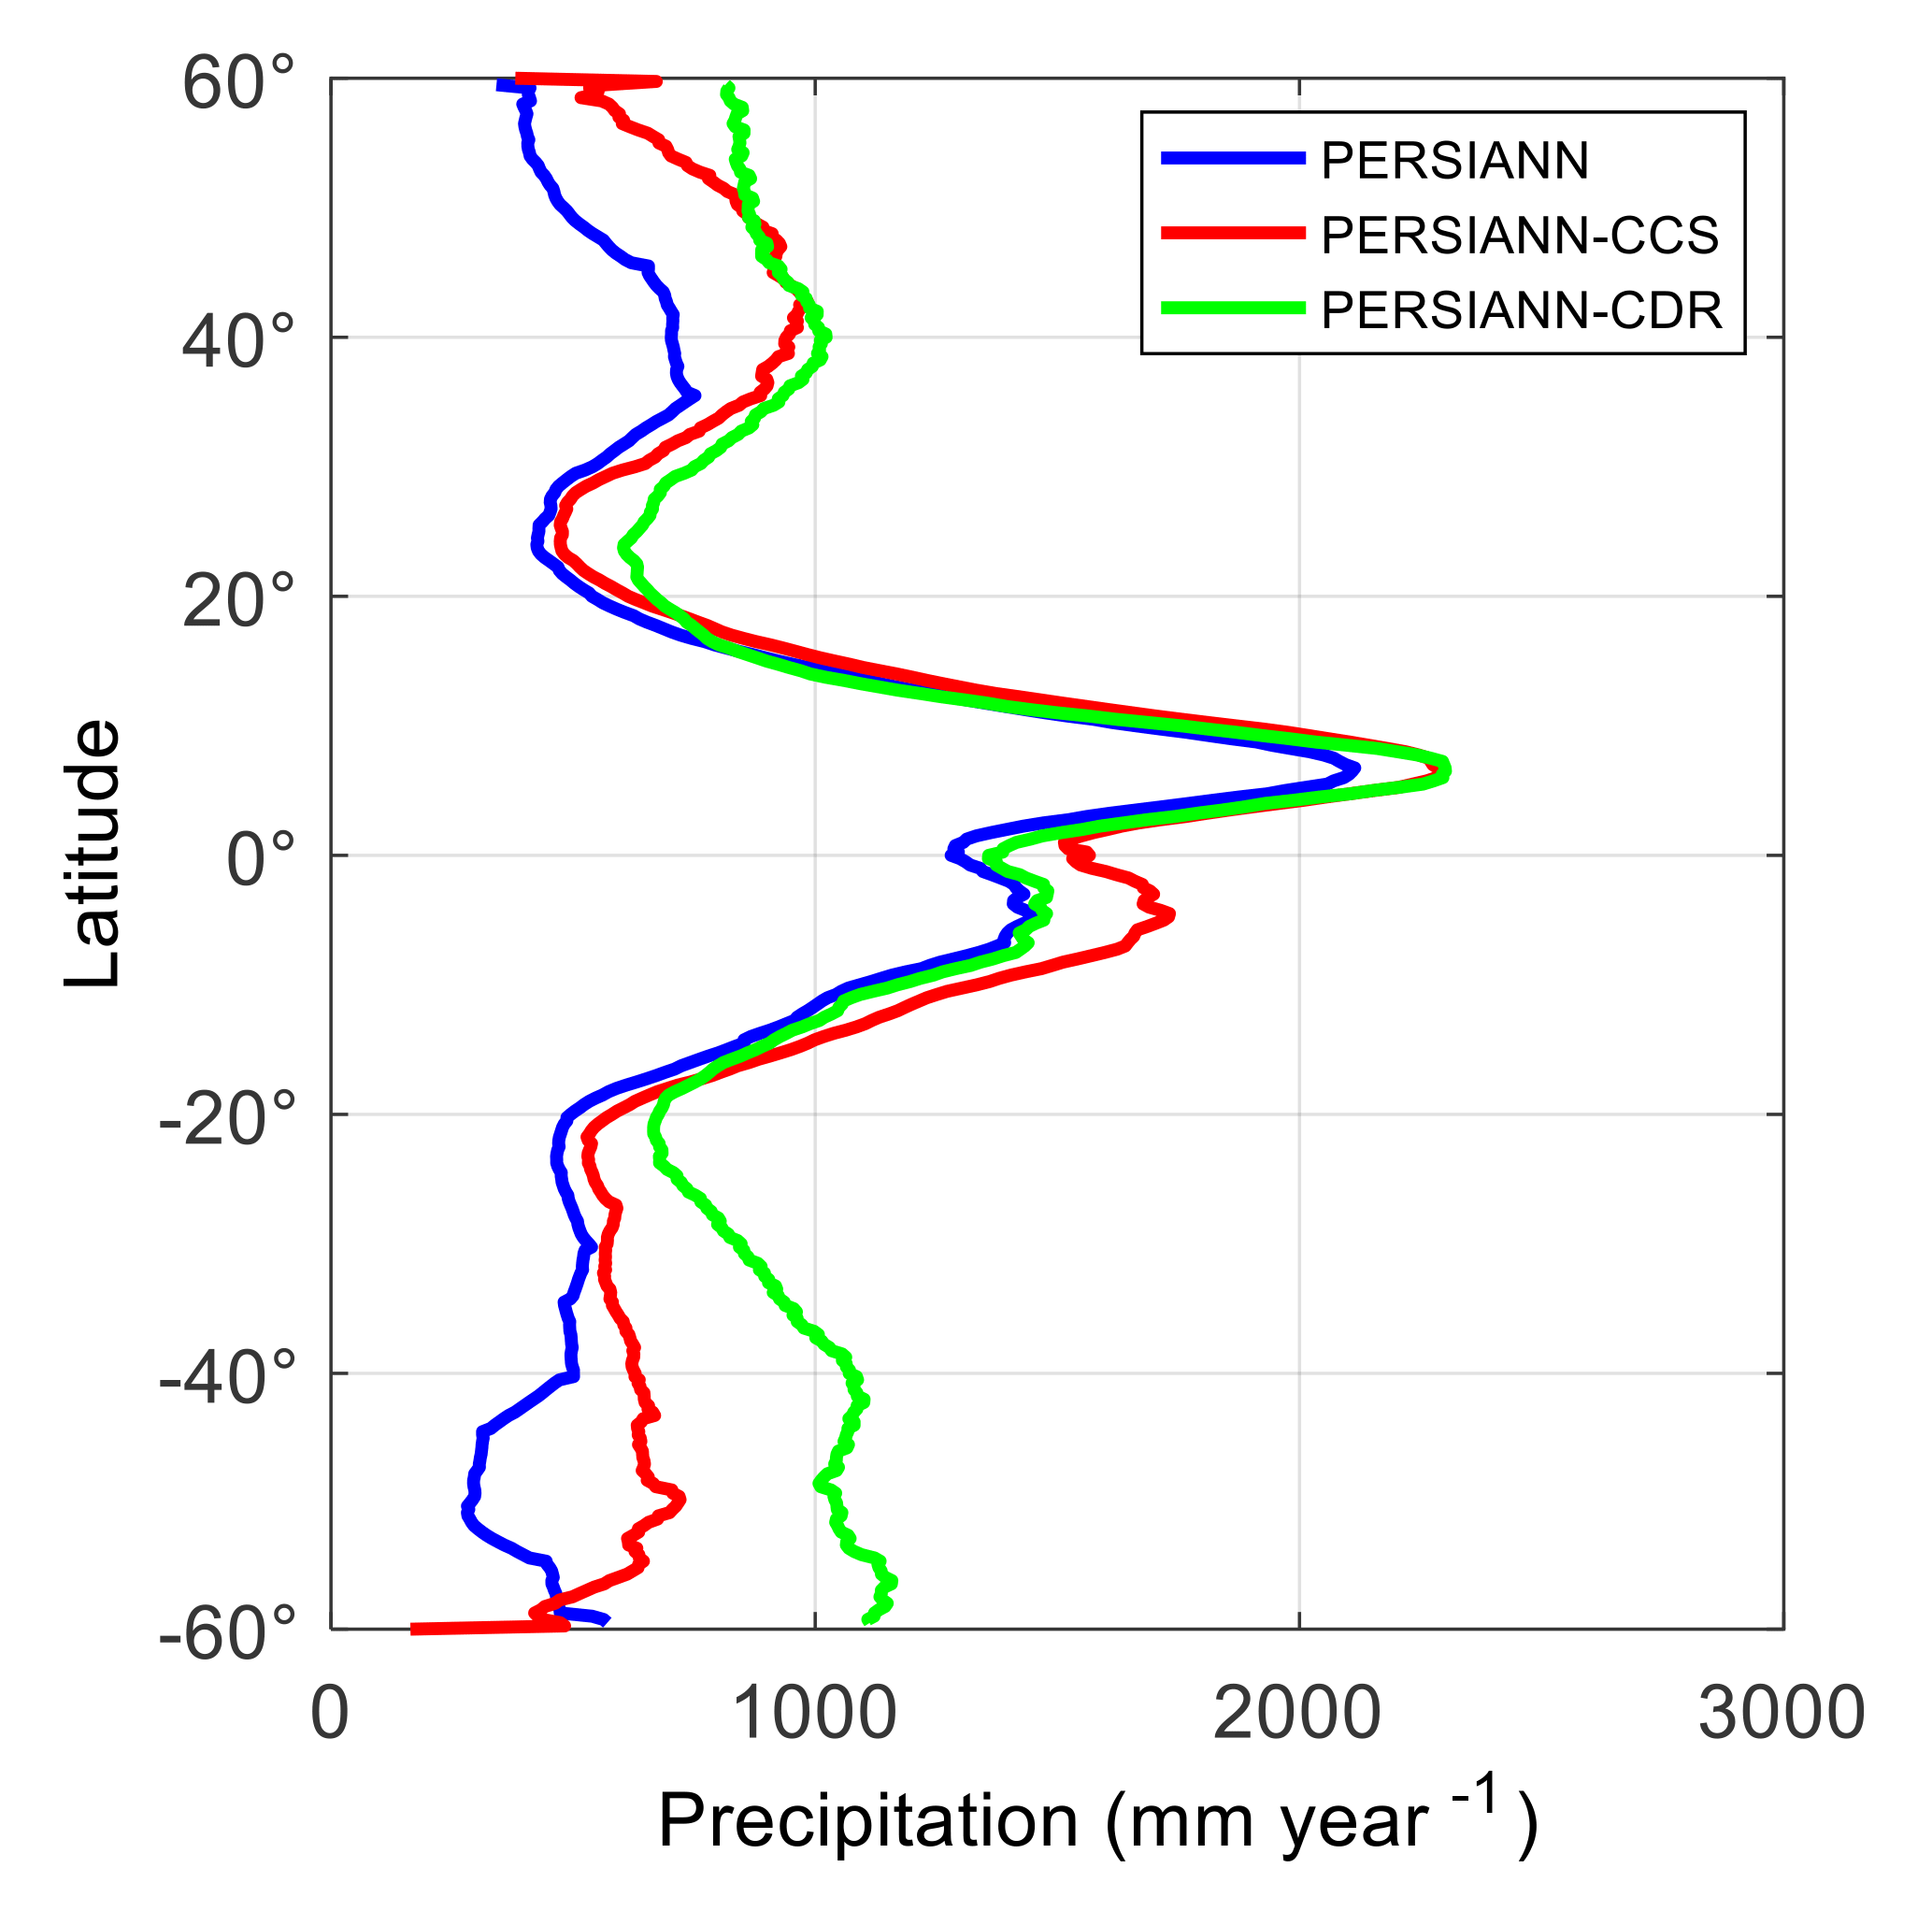 HESS - The PERSIANN family of global satellite precipitation